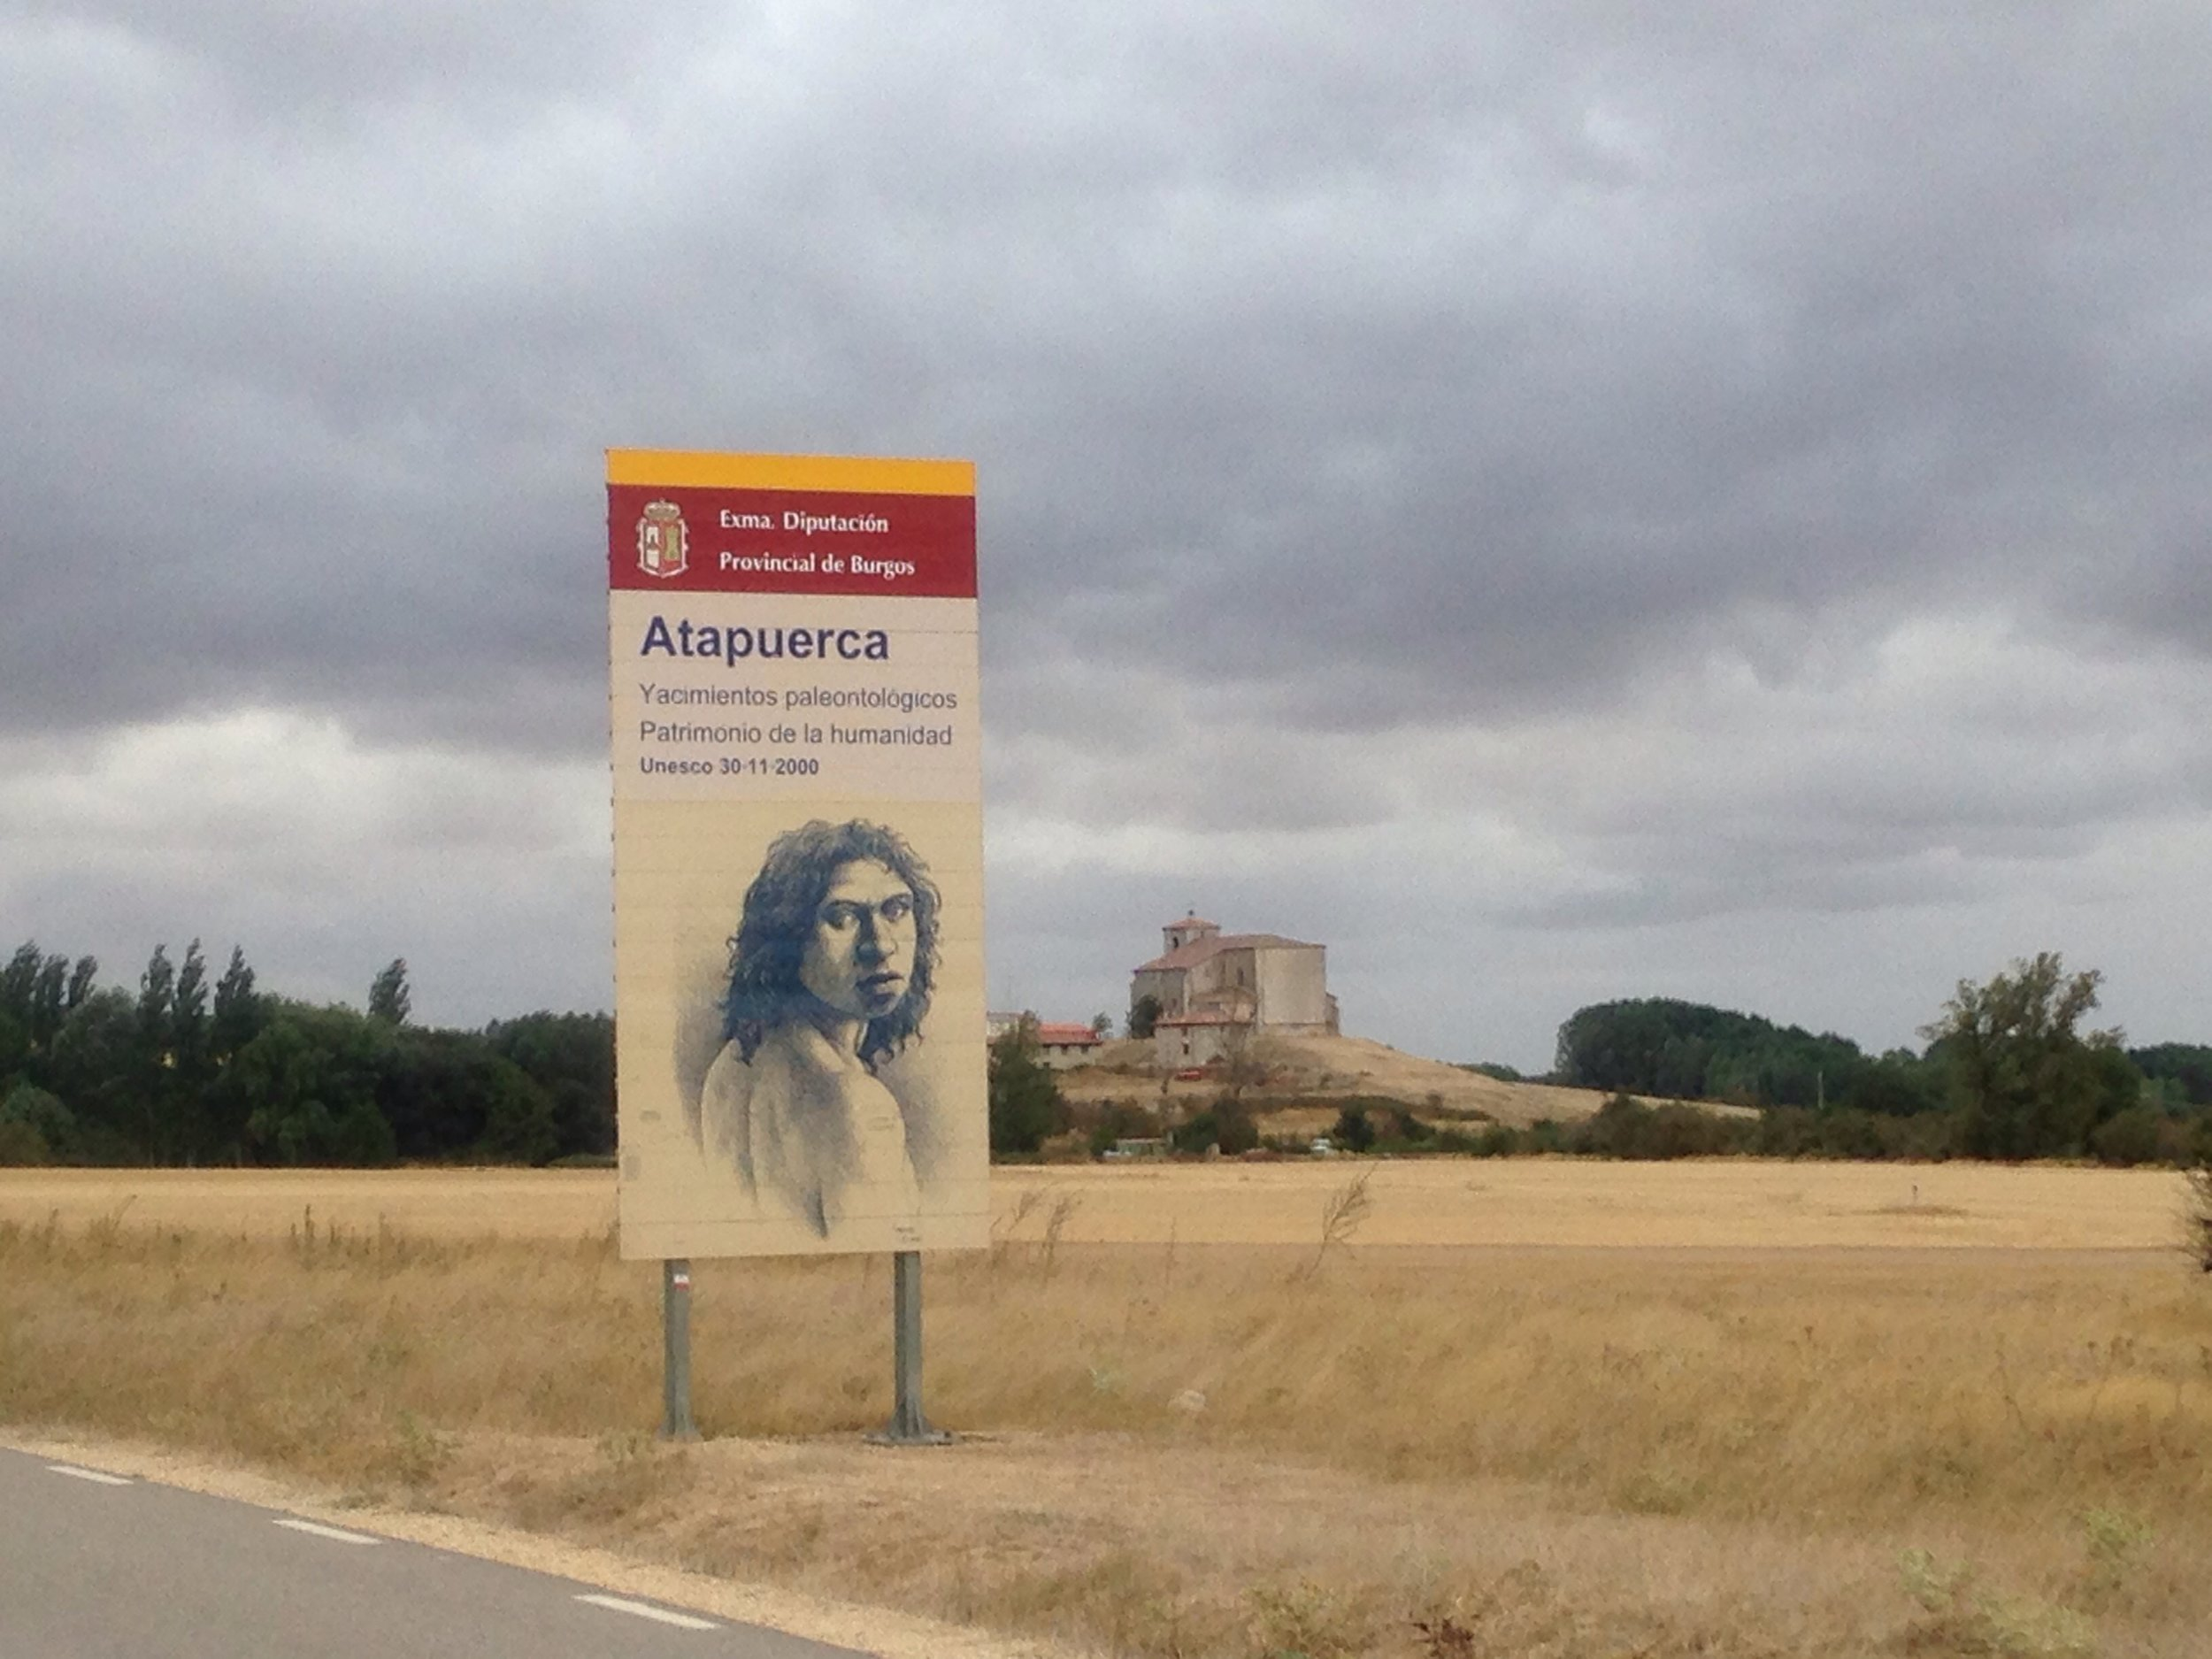 Atapuerca, where the earliest human remains in Europe were discovered